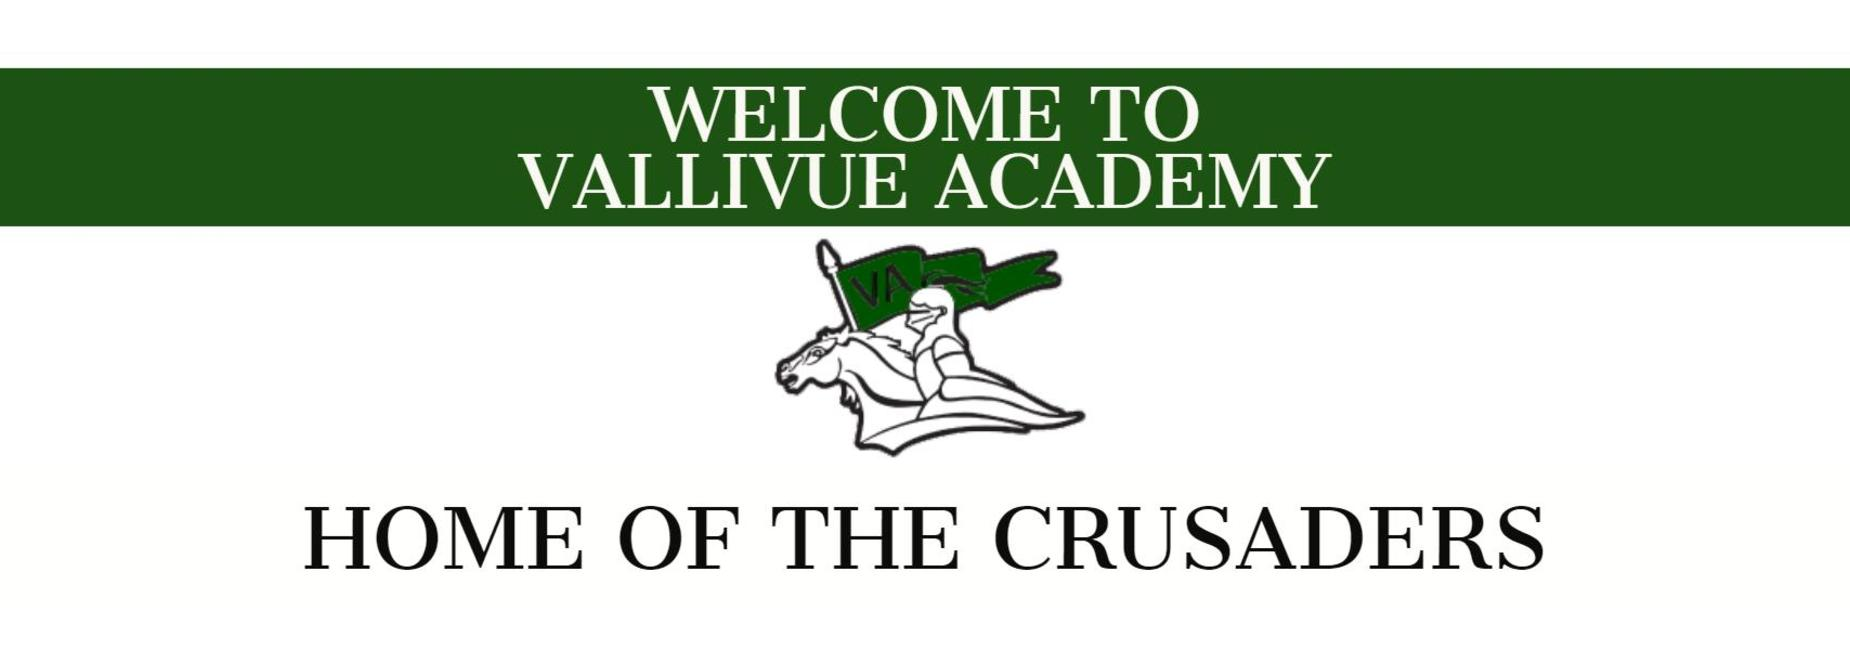 Welcome to Vallivue Academy